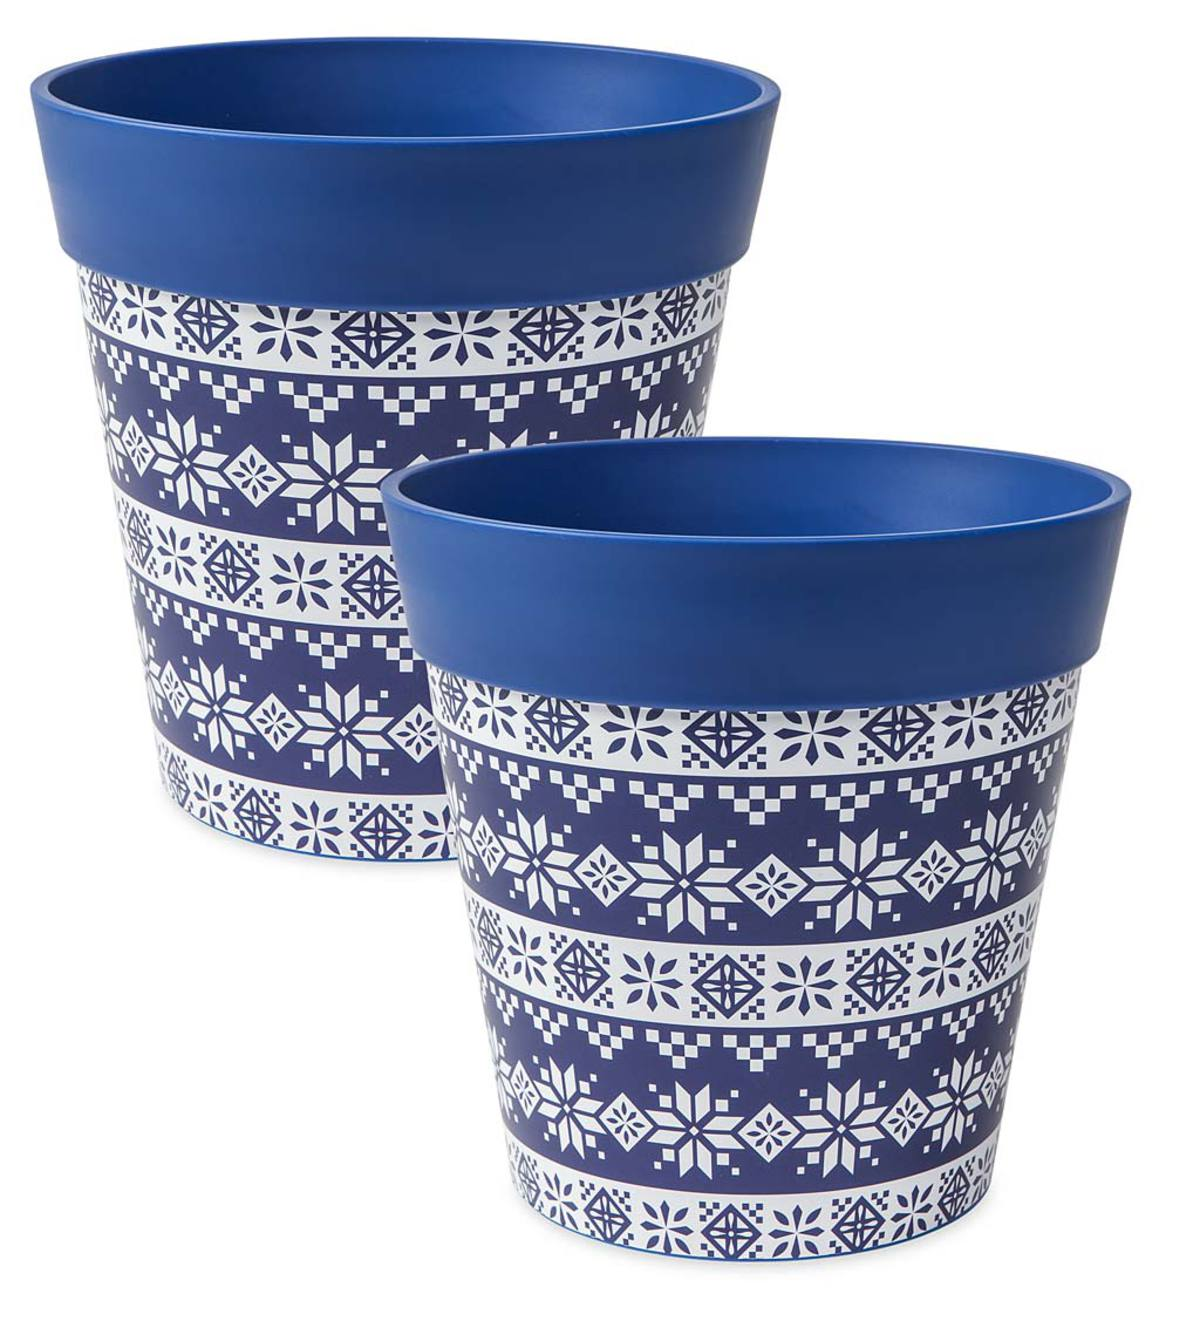 Holiday Hum Pot Colorful Plastic Plant Pots, Set of 2 - Fair Isle